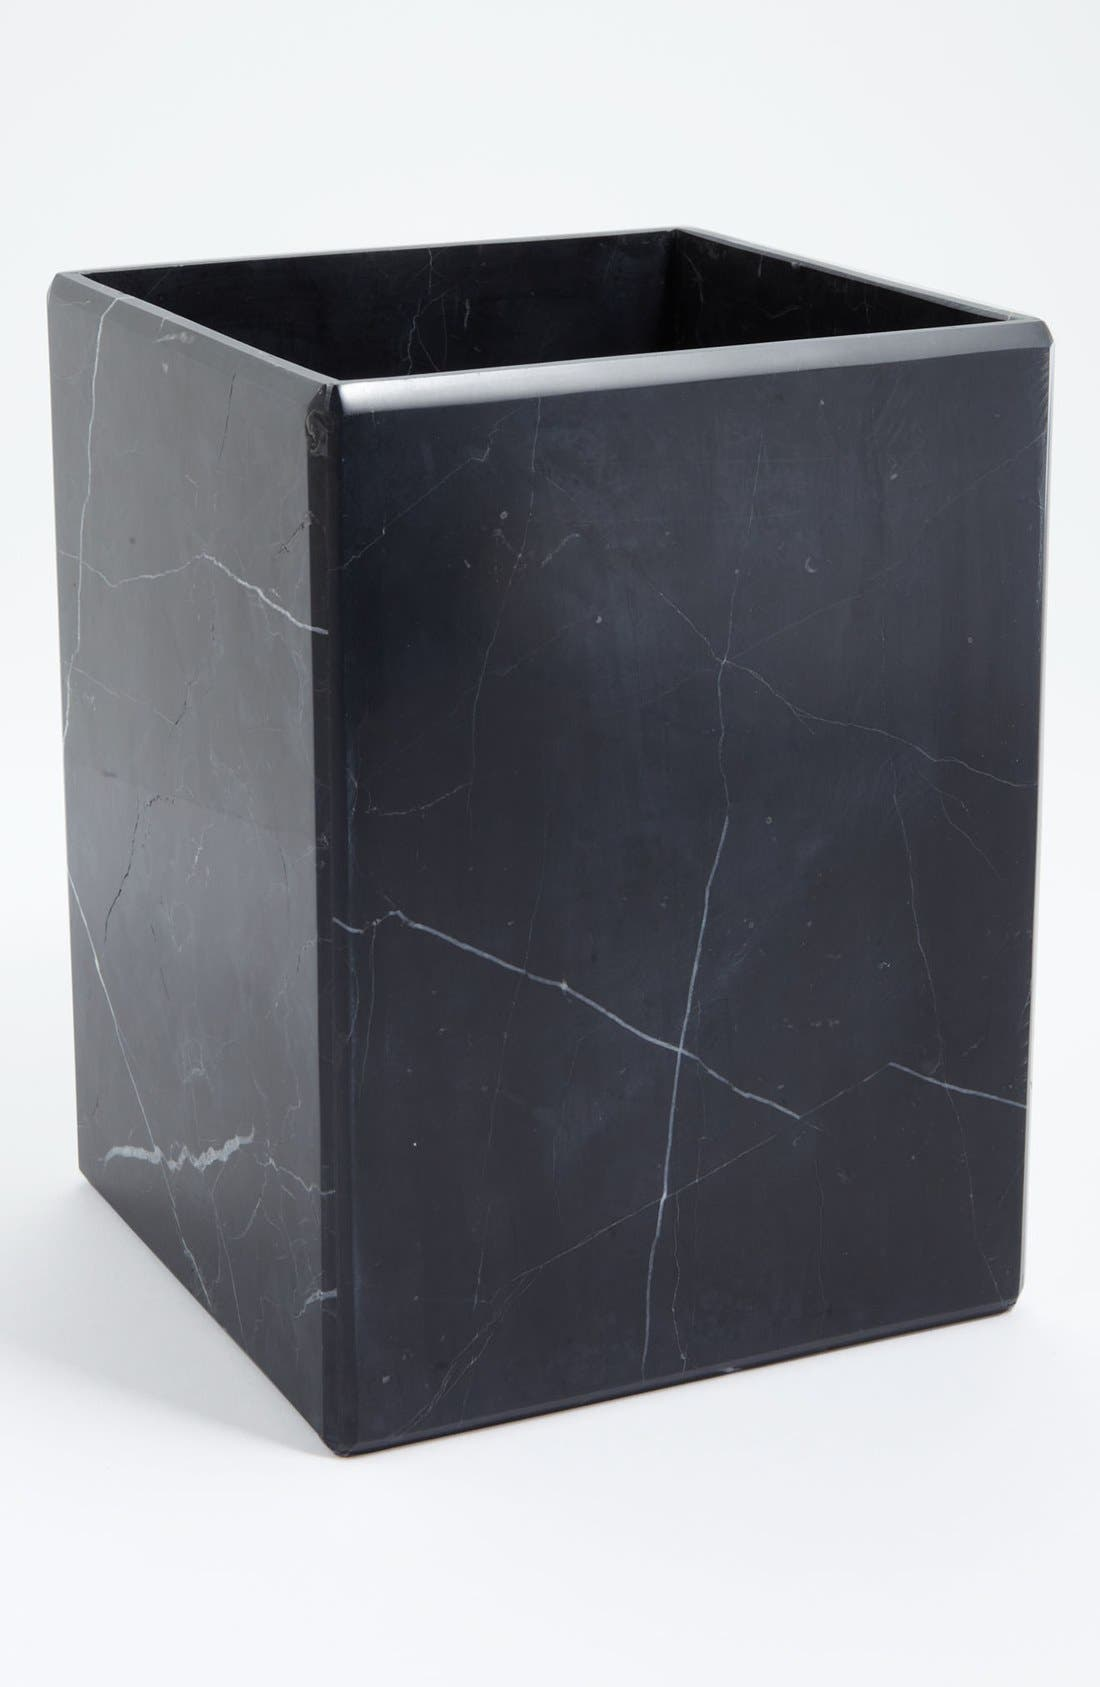 Main Image - Waterworks Studio 'Luna' Black Marble Wastebasket (Online Only)